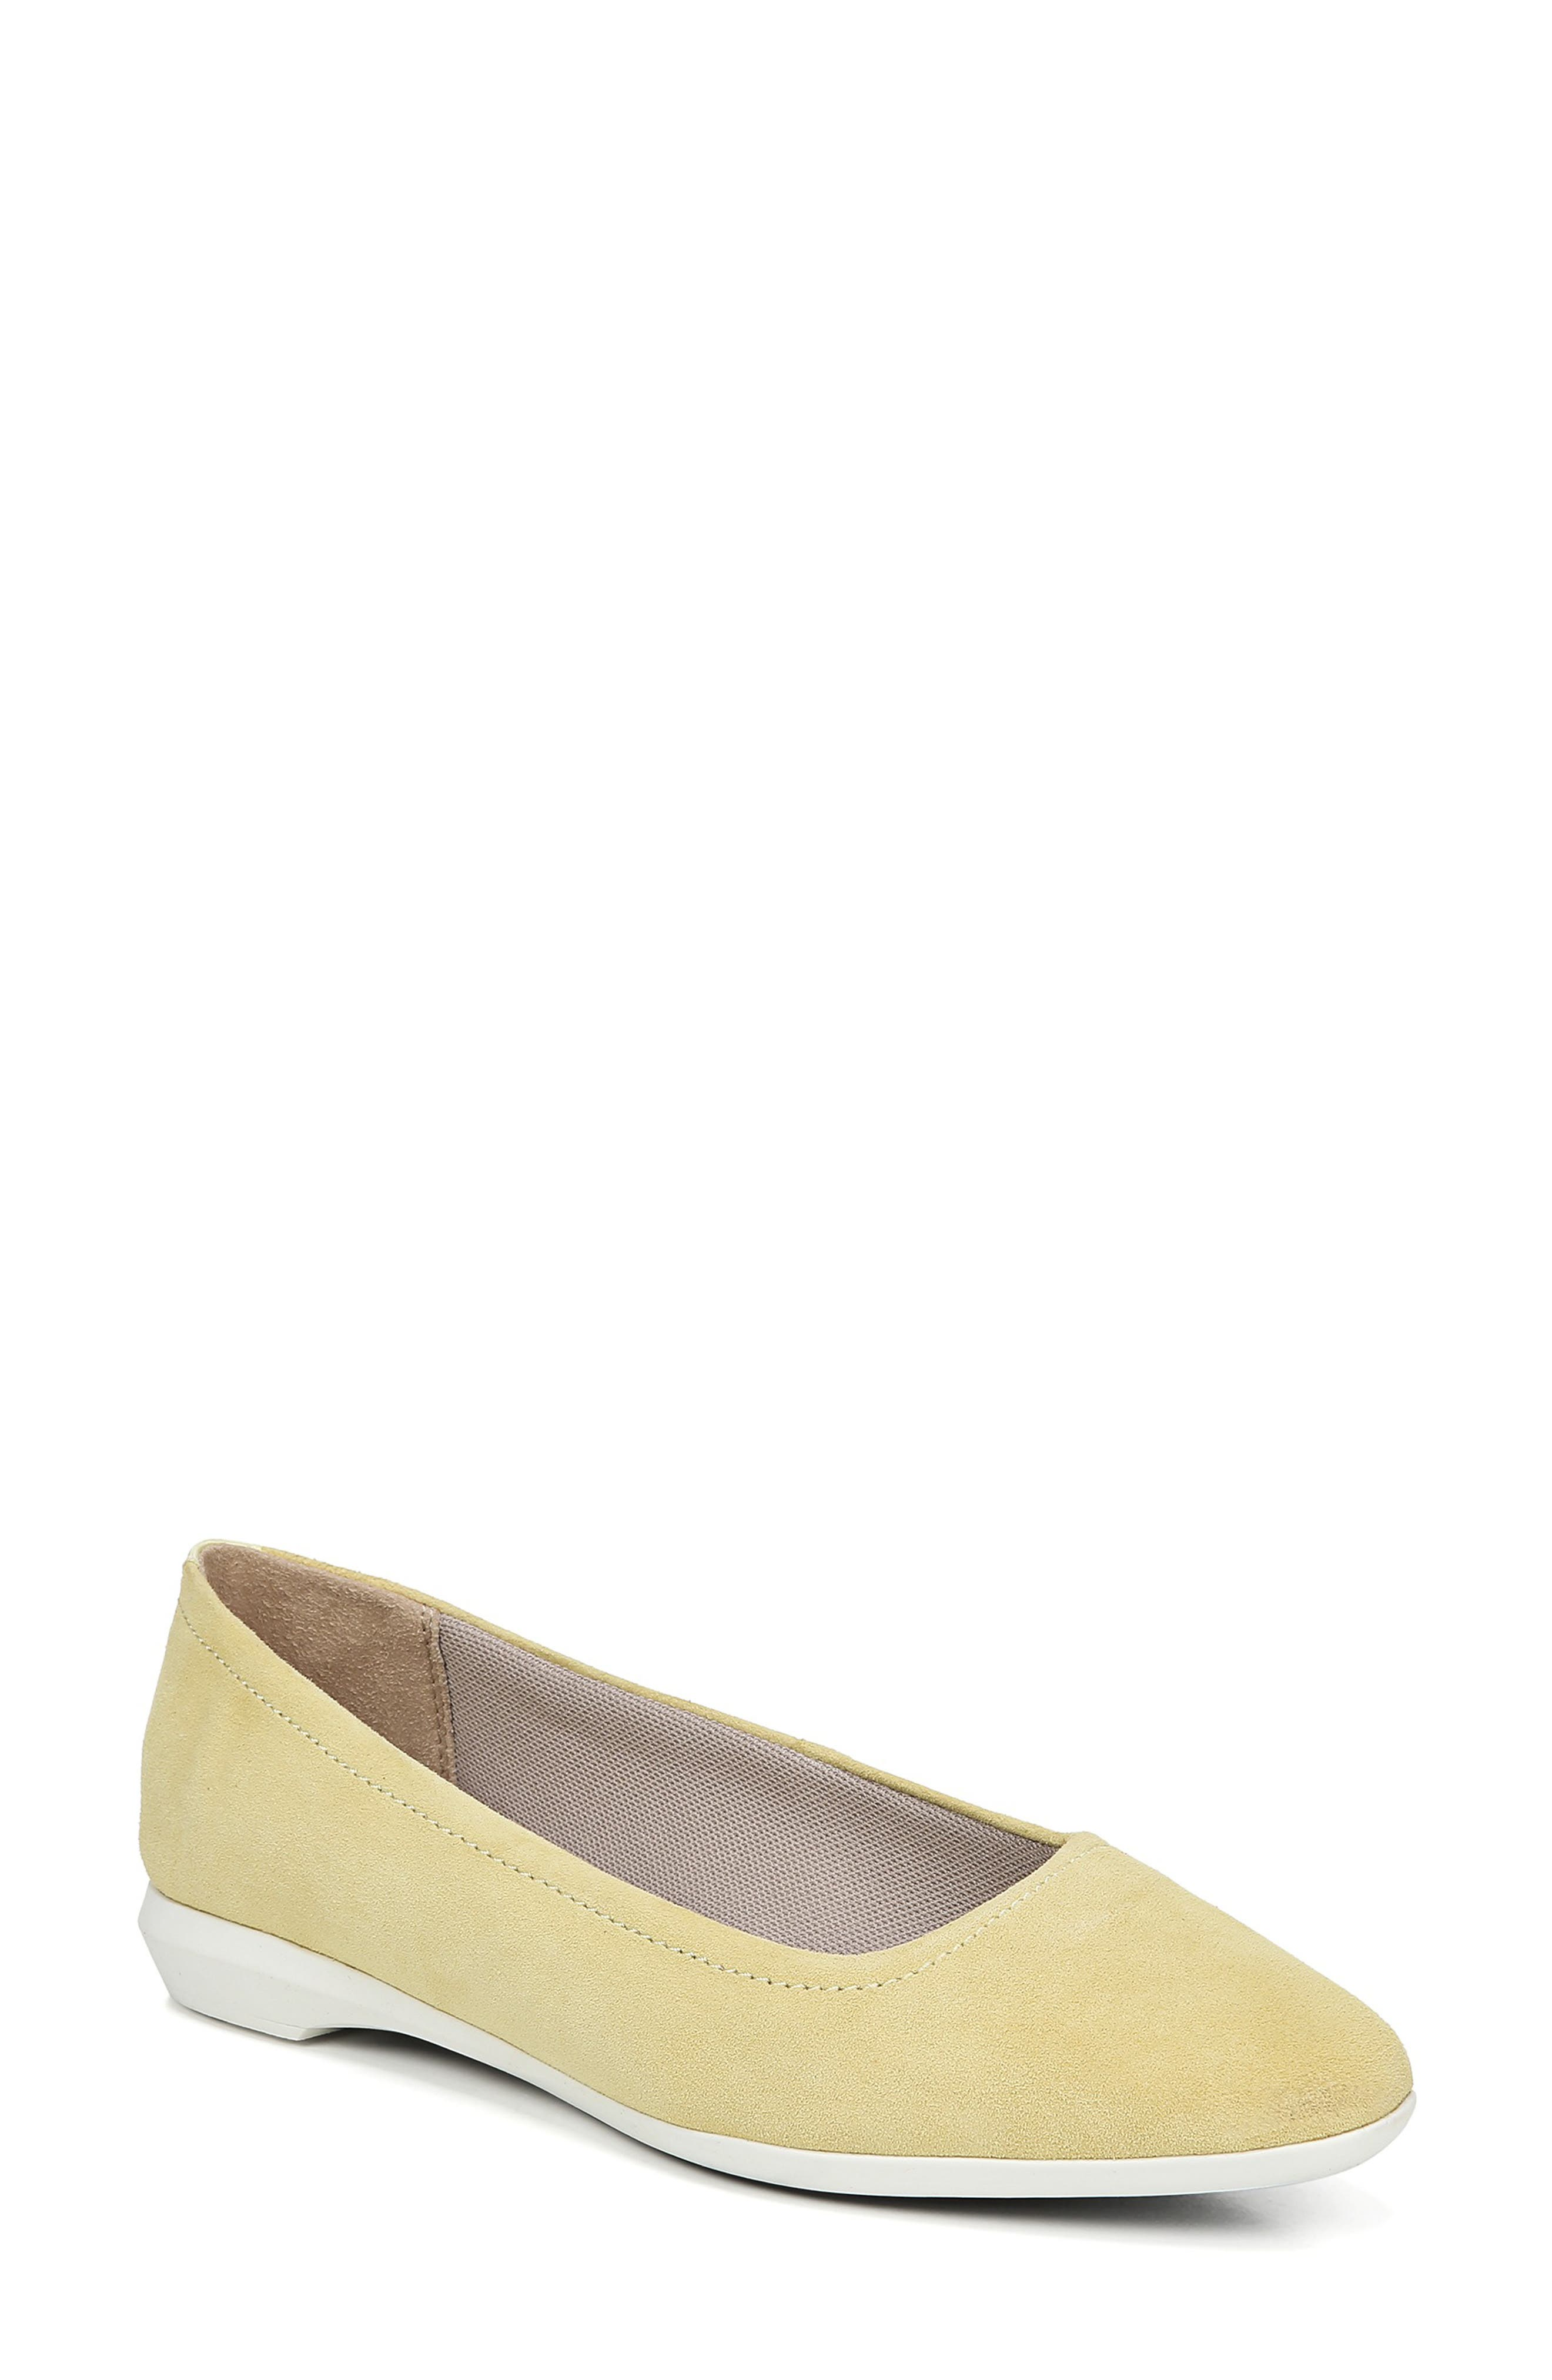 Naturalizer Alya Flat, Yellow